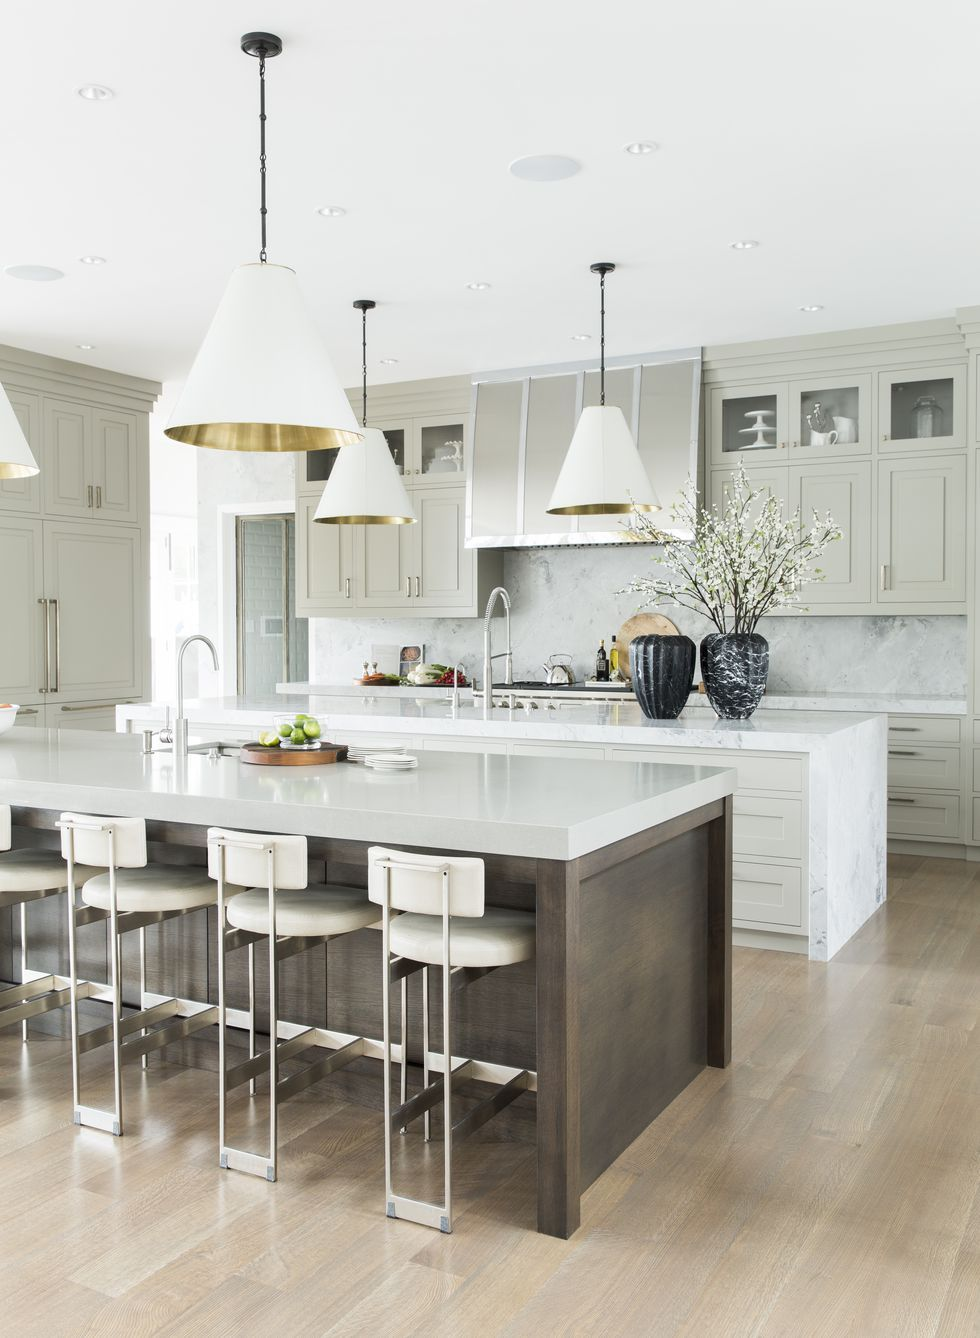 Kitchens with island